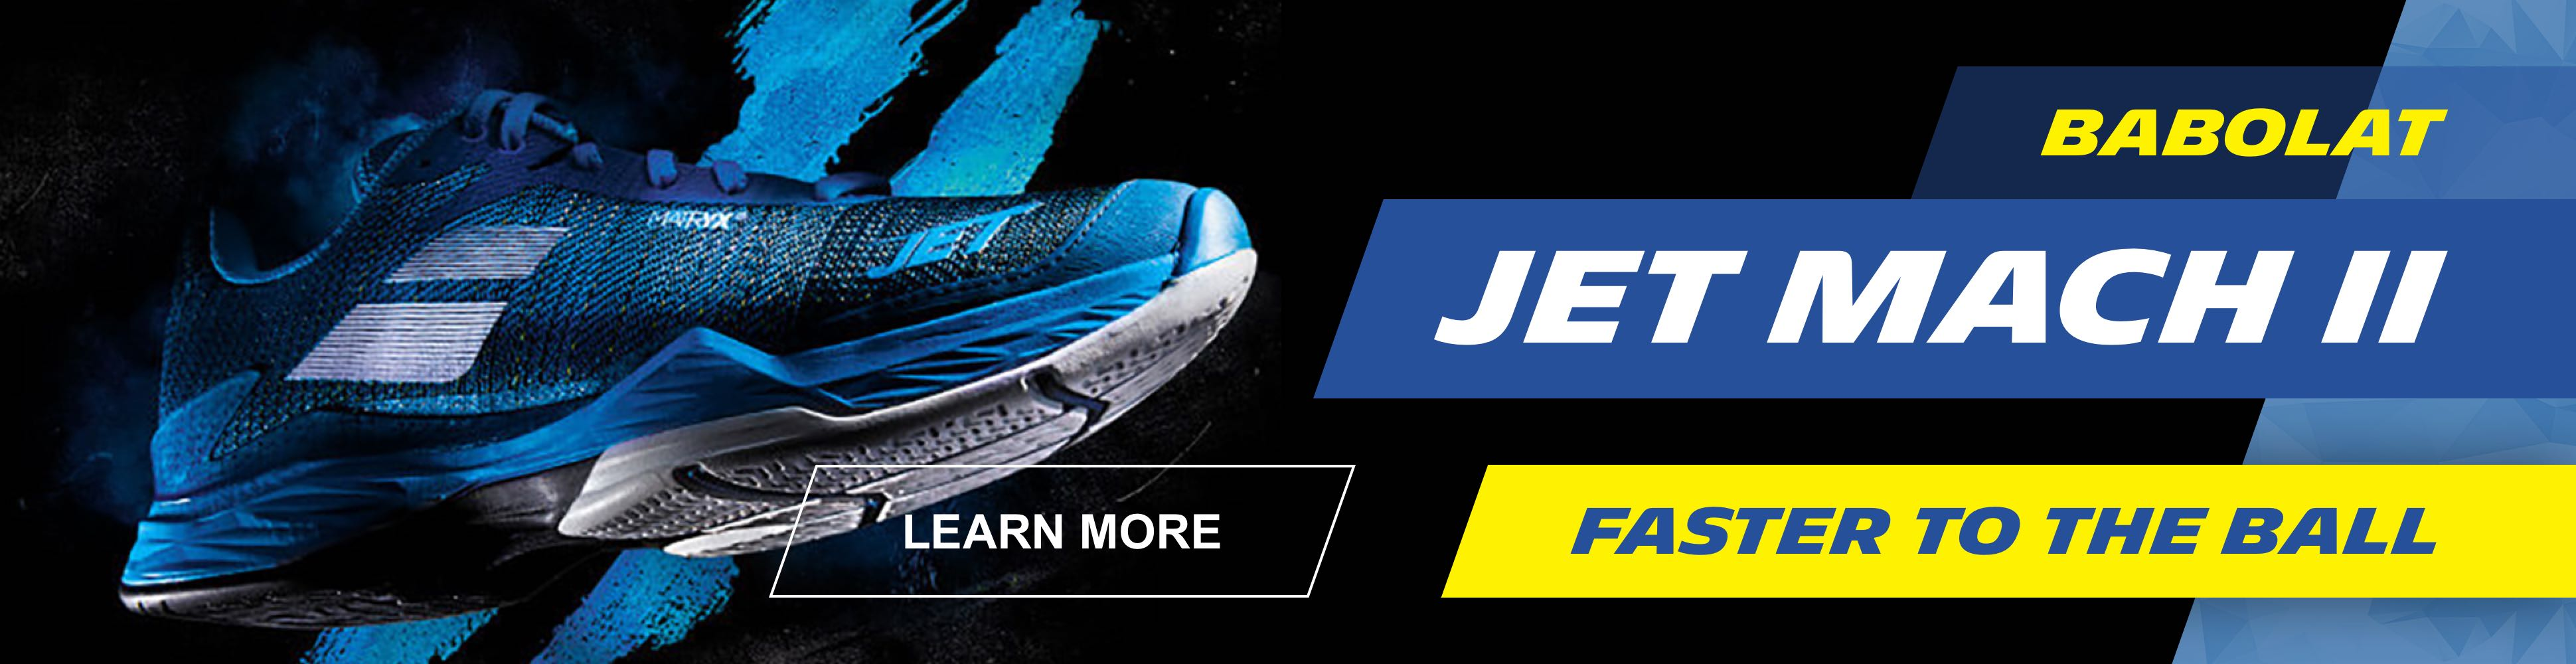 Jet Mach II — Faster to the Ball